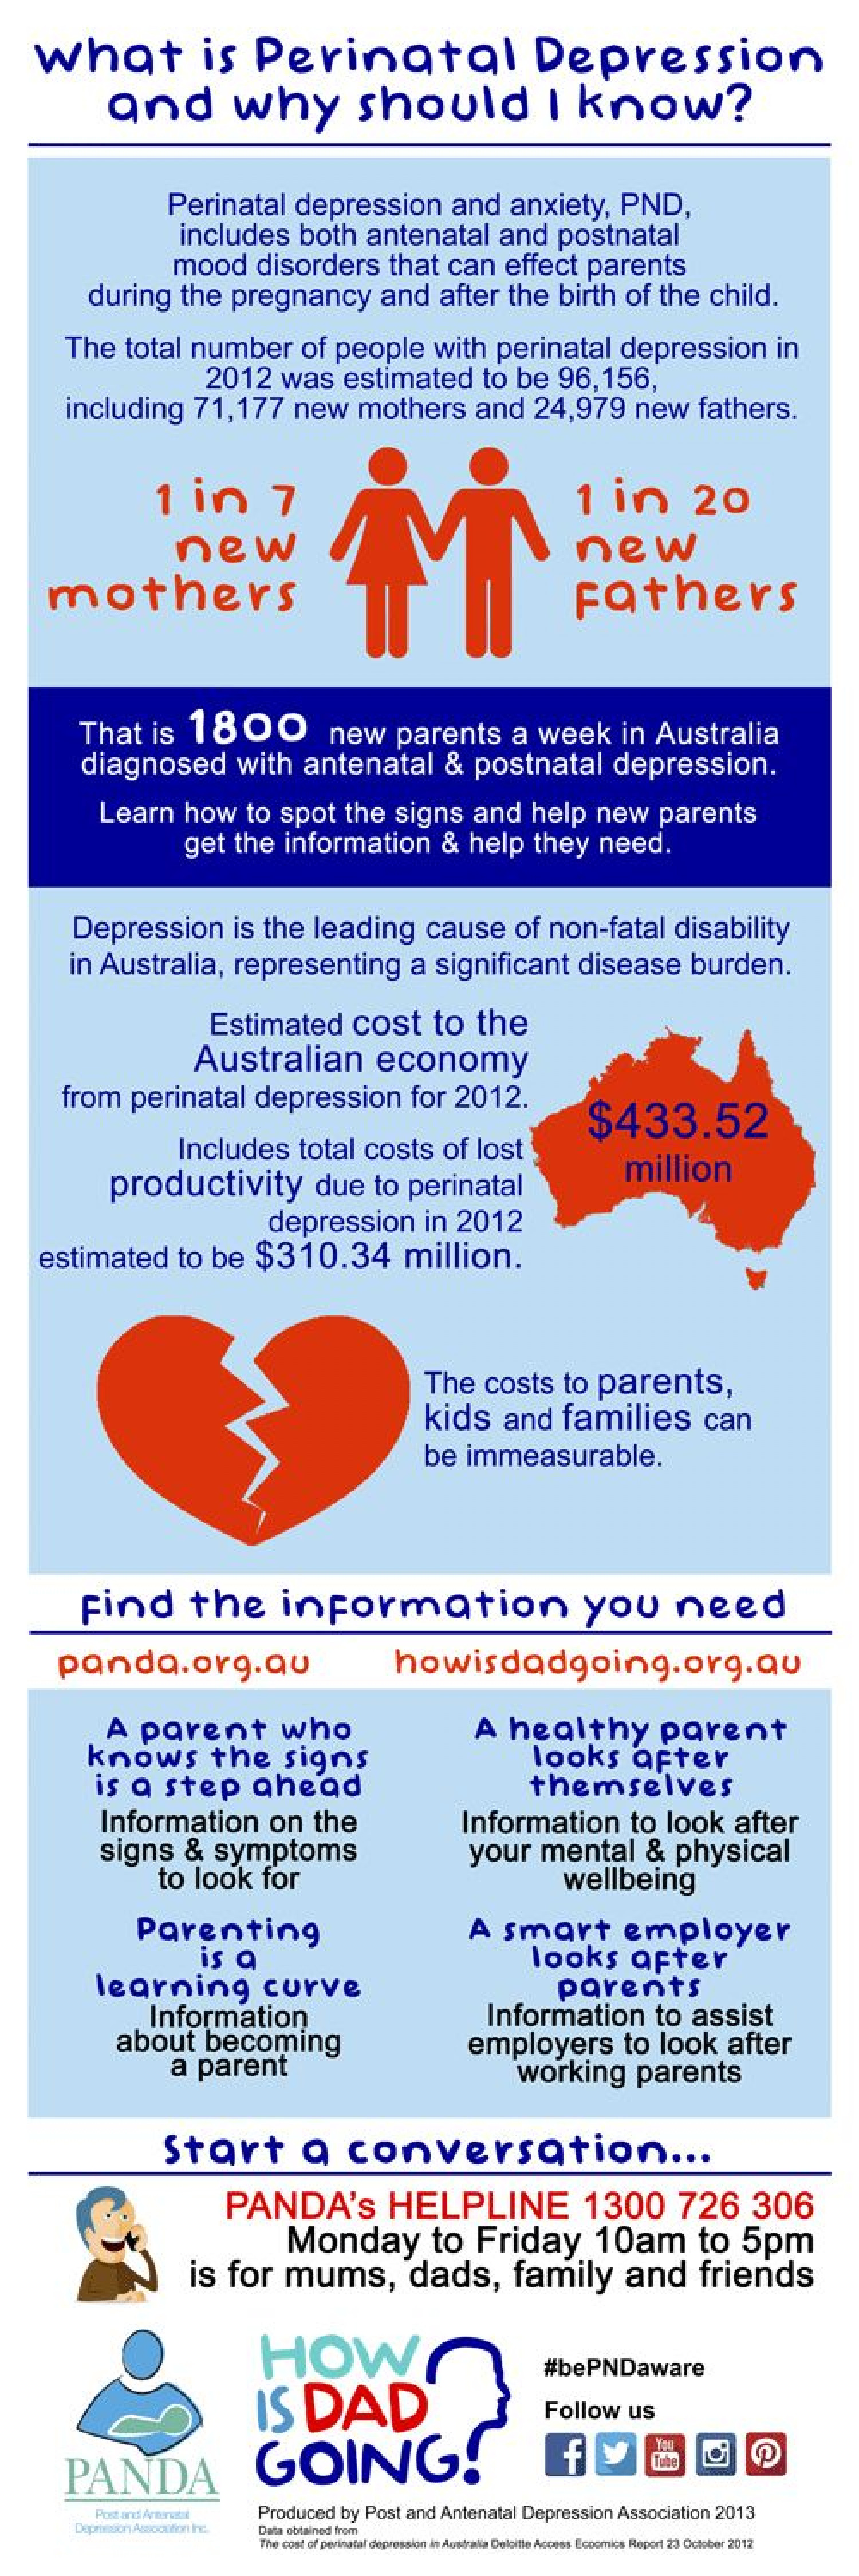 What is PND and why should I know? Infographic